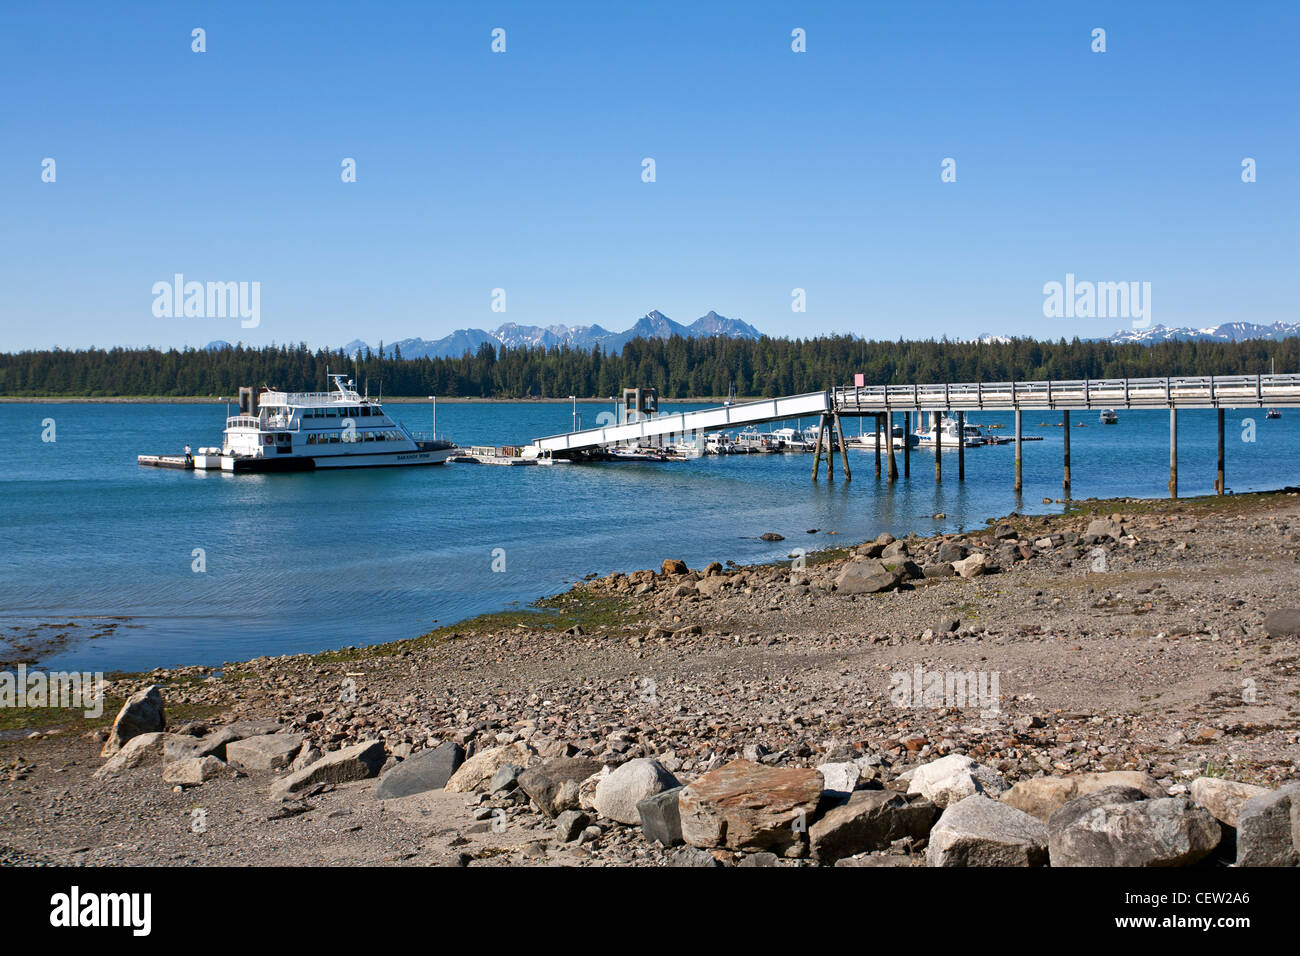 Bartlett Cove jetty. Glacier Bay National Park. Alaska. USA - Stock Image